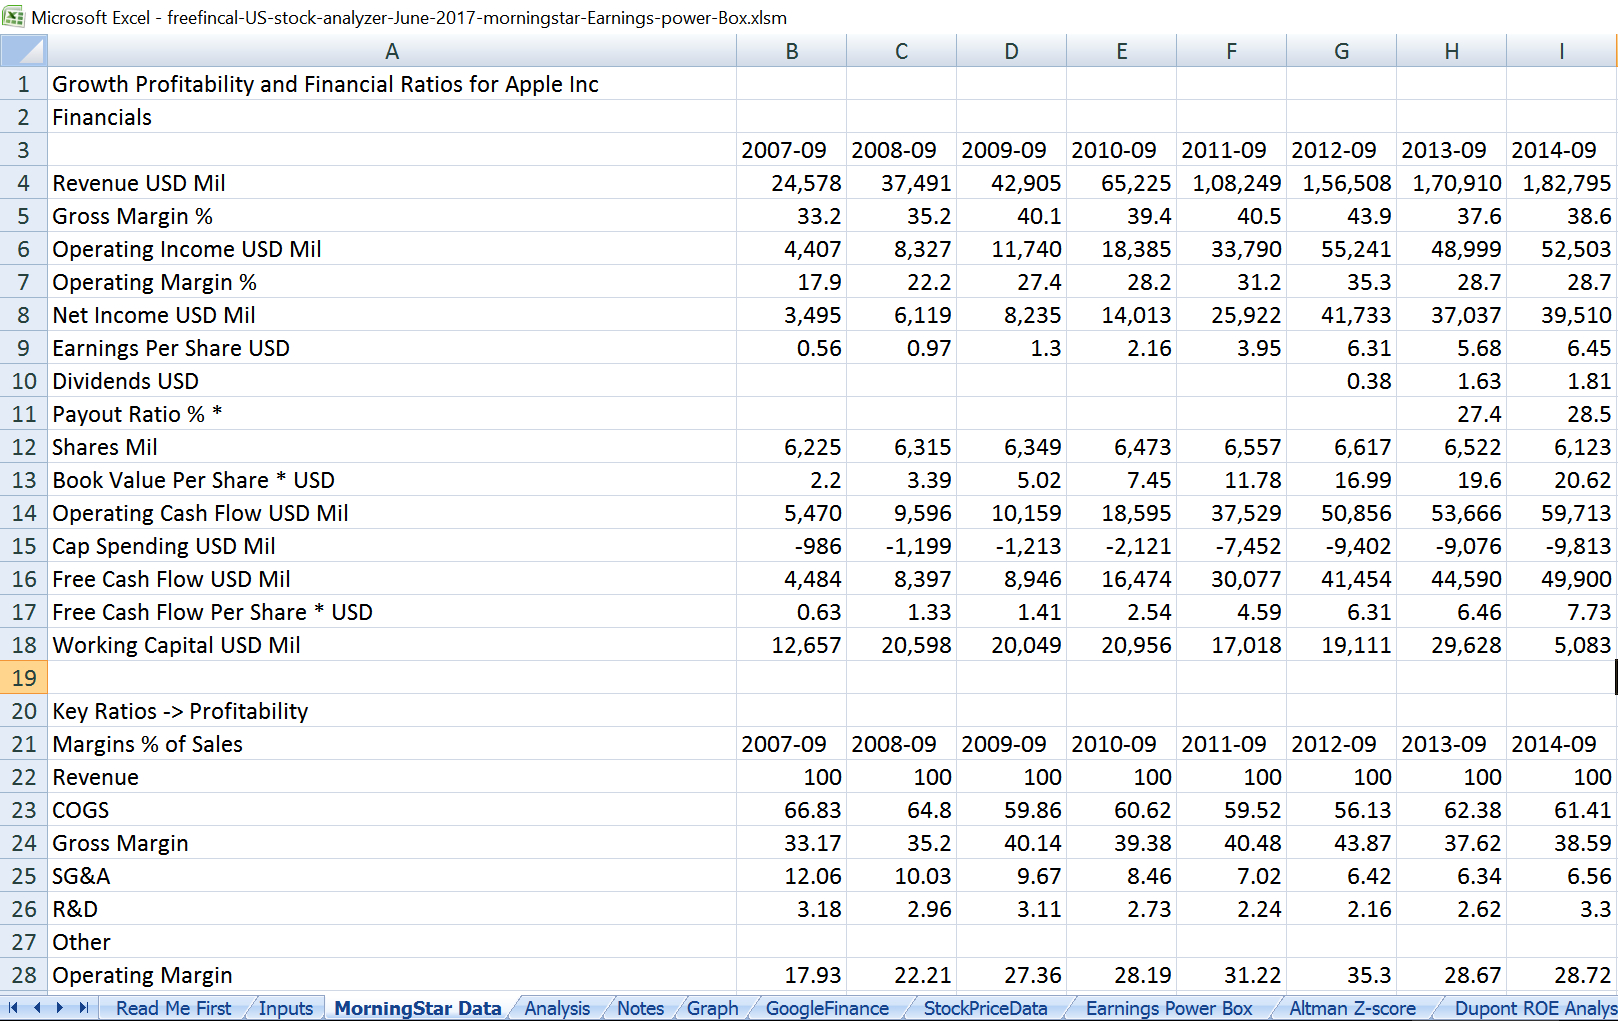 Stock Analysis Spreadsheet Regarding Stock Analysis Spreadsheet For U.s. Stocks: Free Download